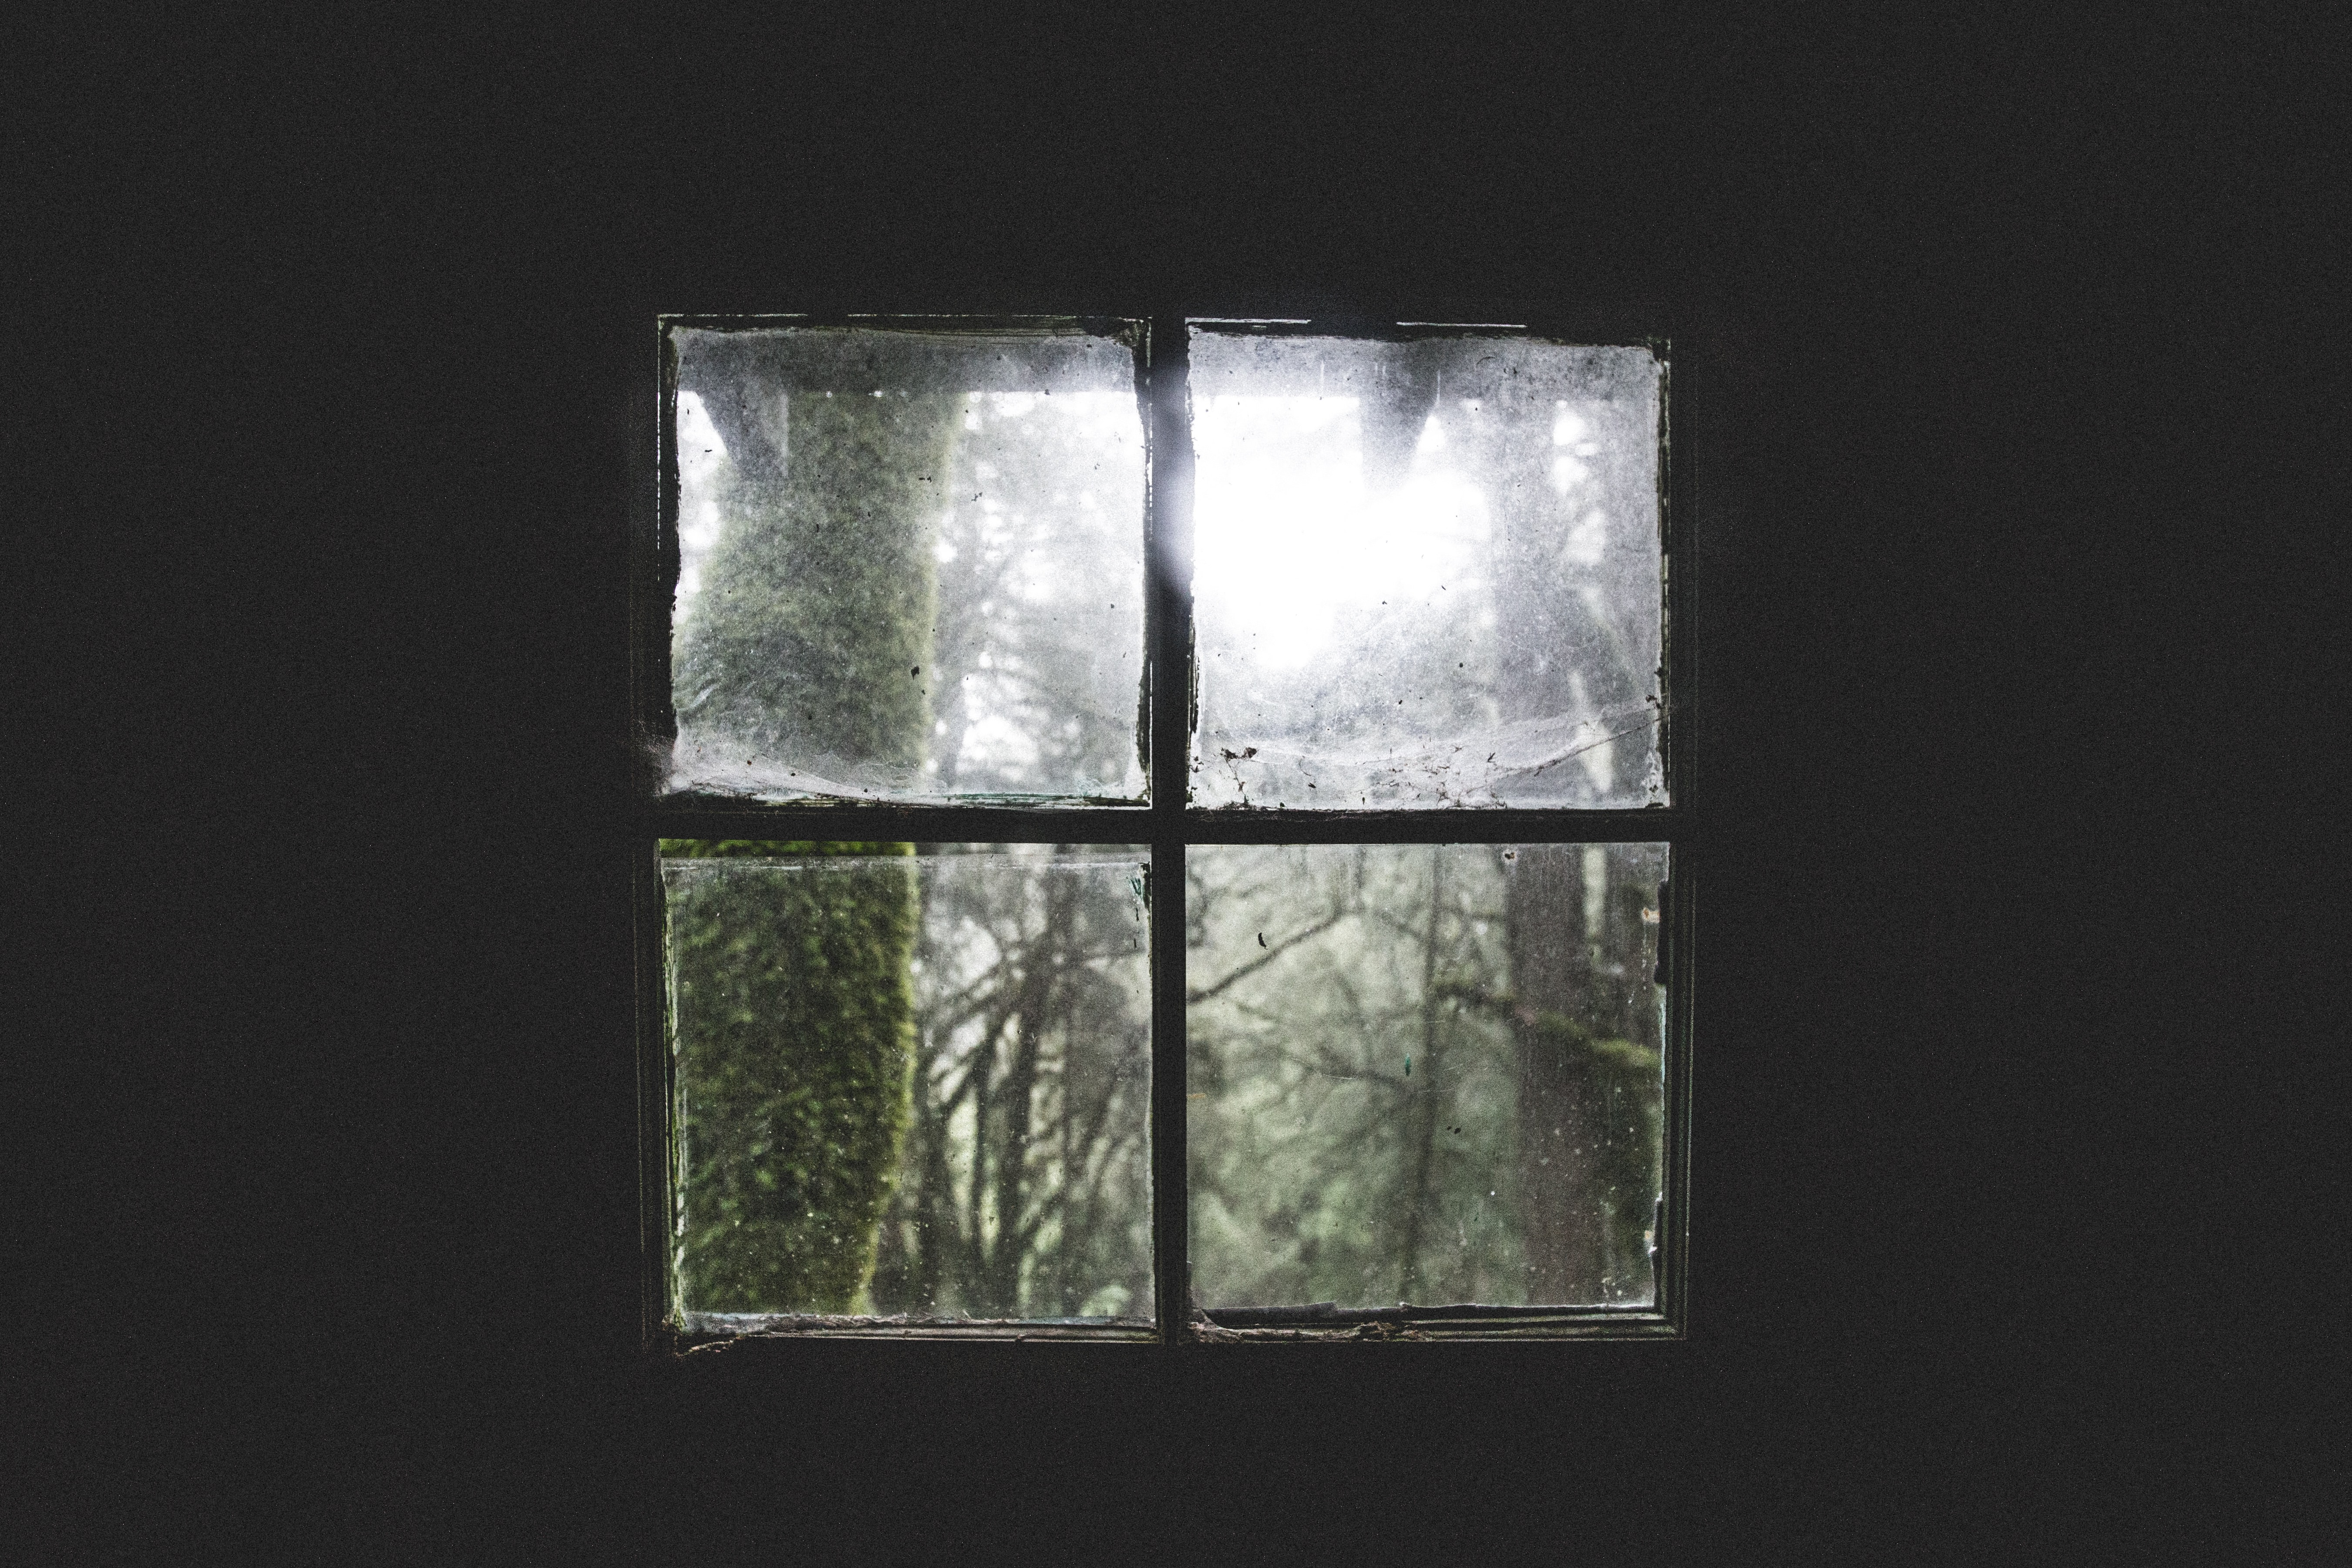 A small square window in a dark room with a view on mossy trees